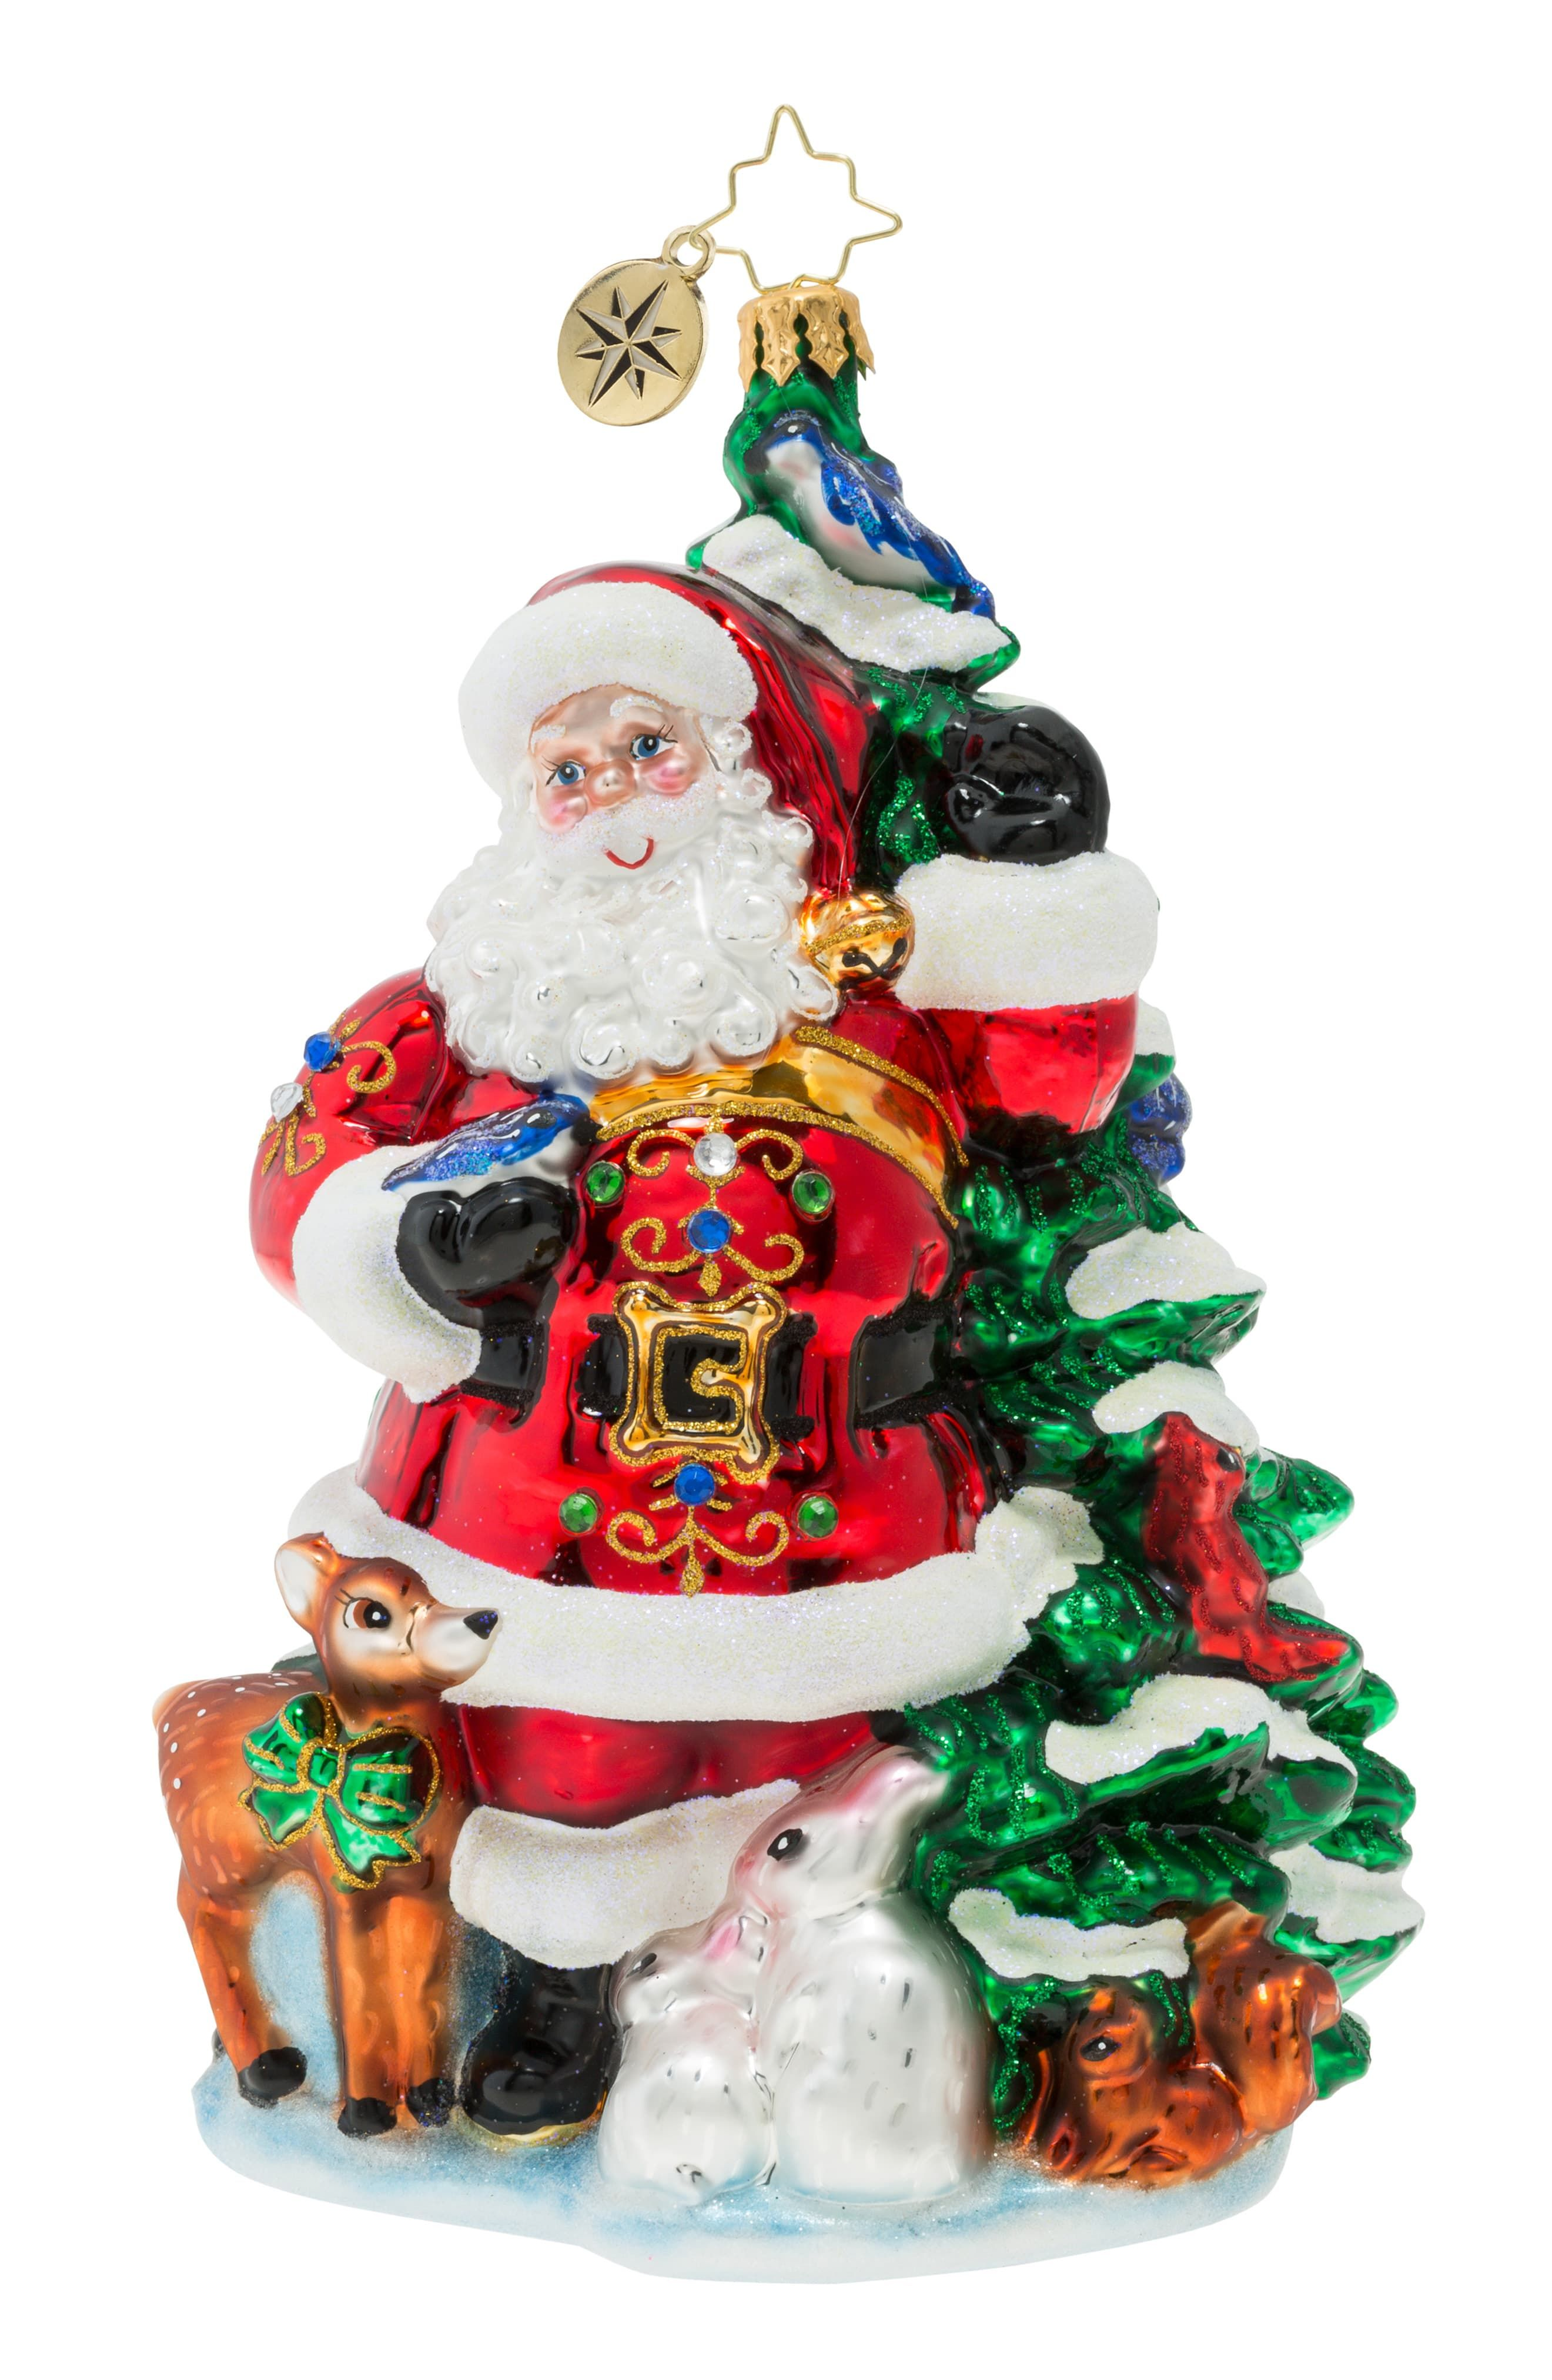 Christopher Radko Santa S Menagerie Of Friends Ornament Size One Size Red Classic Christmas Decorations Christmas Ornaments Christopher Radko Ornaments